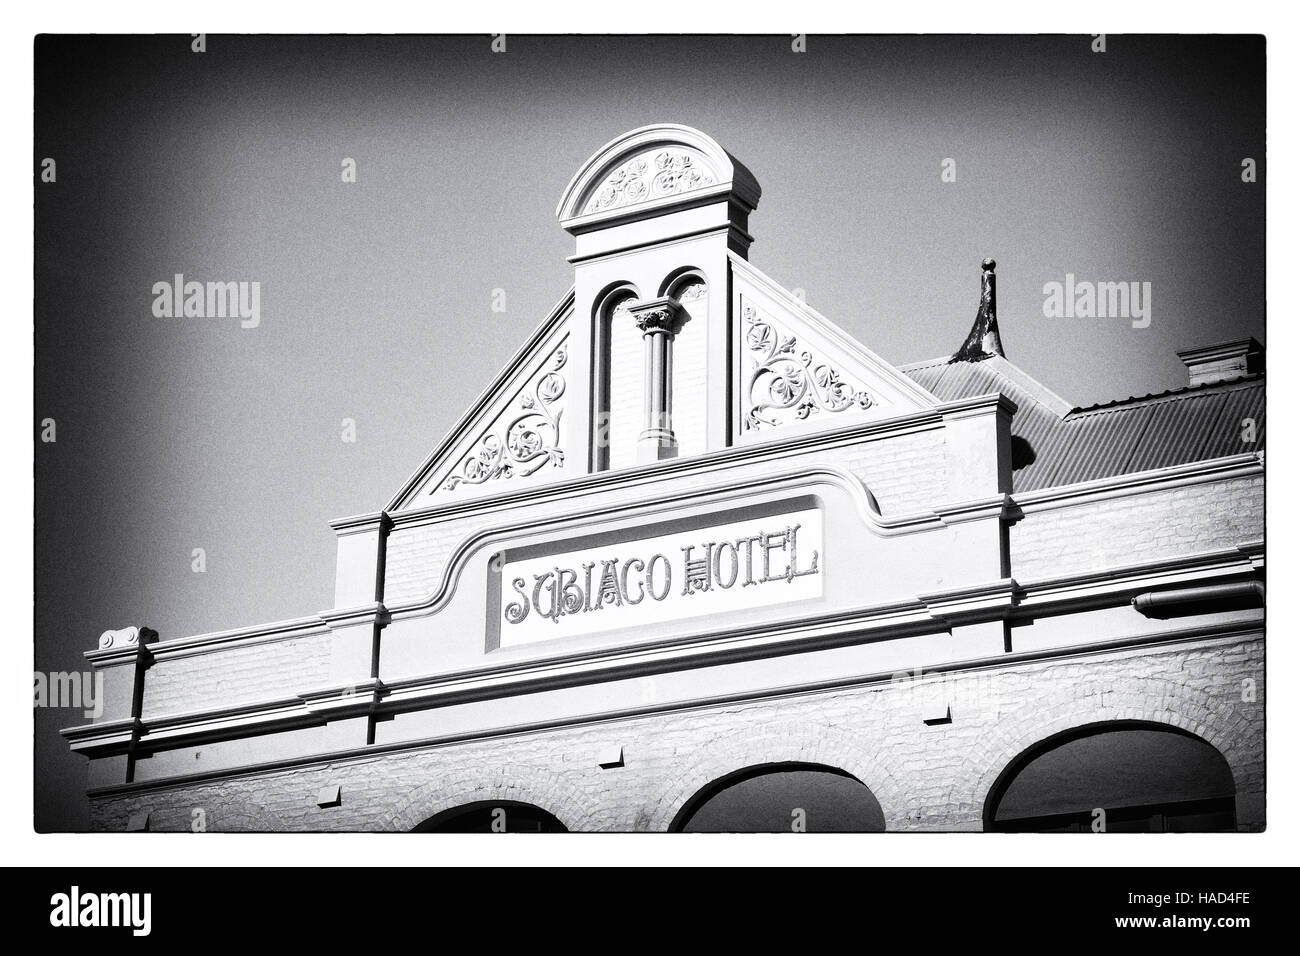 The pediment of Subiaco Hotel in Perth, Western Australia, is a splendid example of the fine colonial architecture - Stock Image